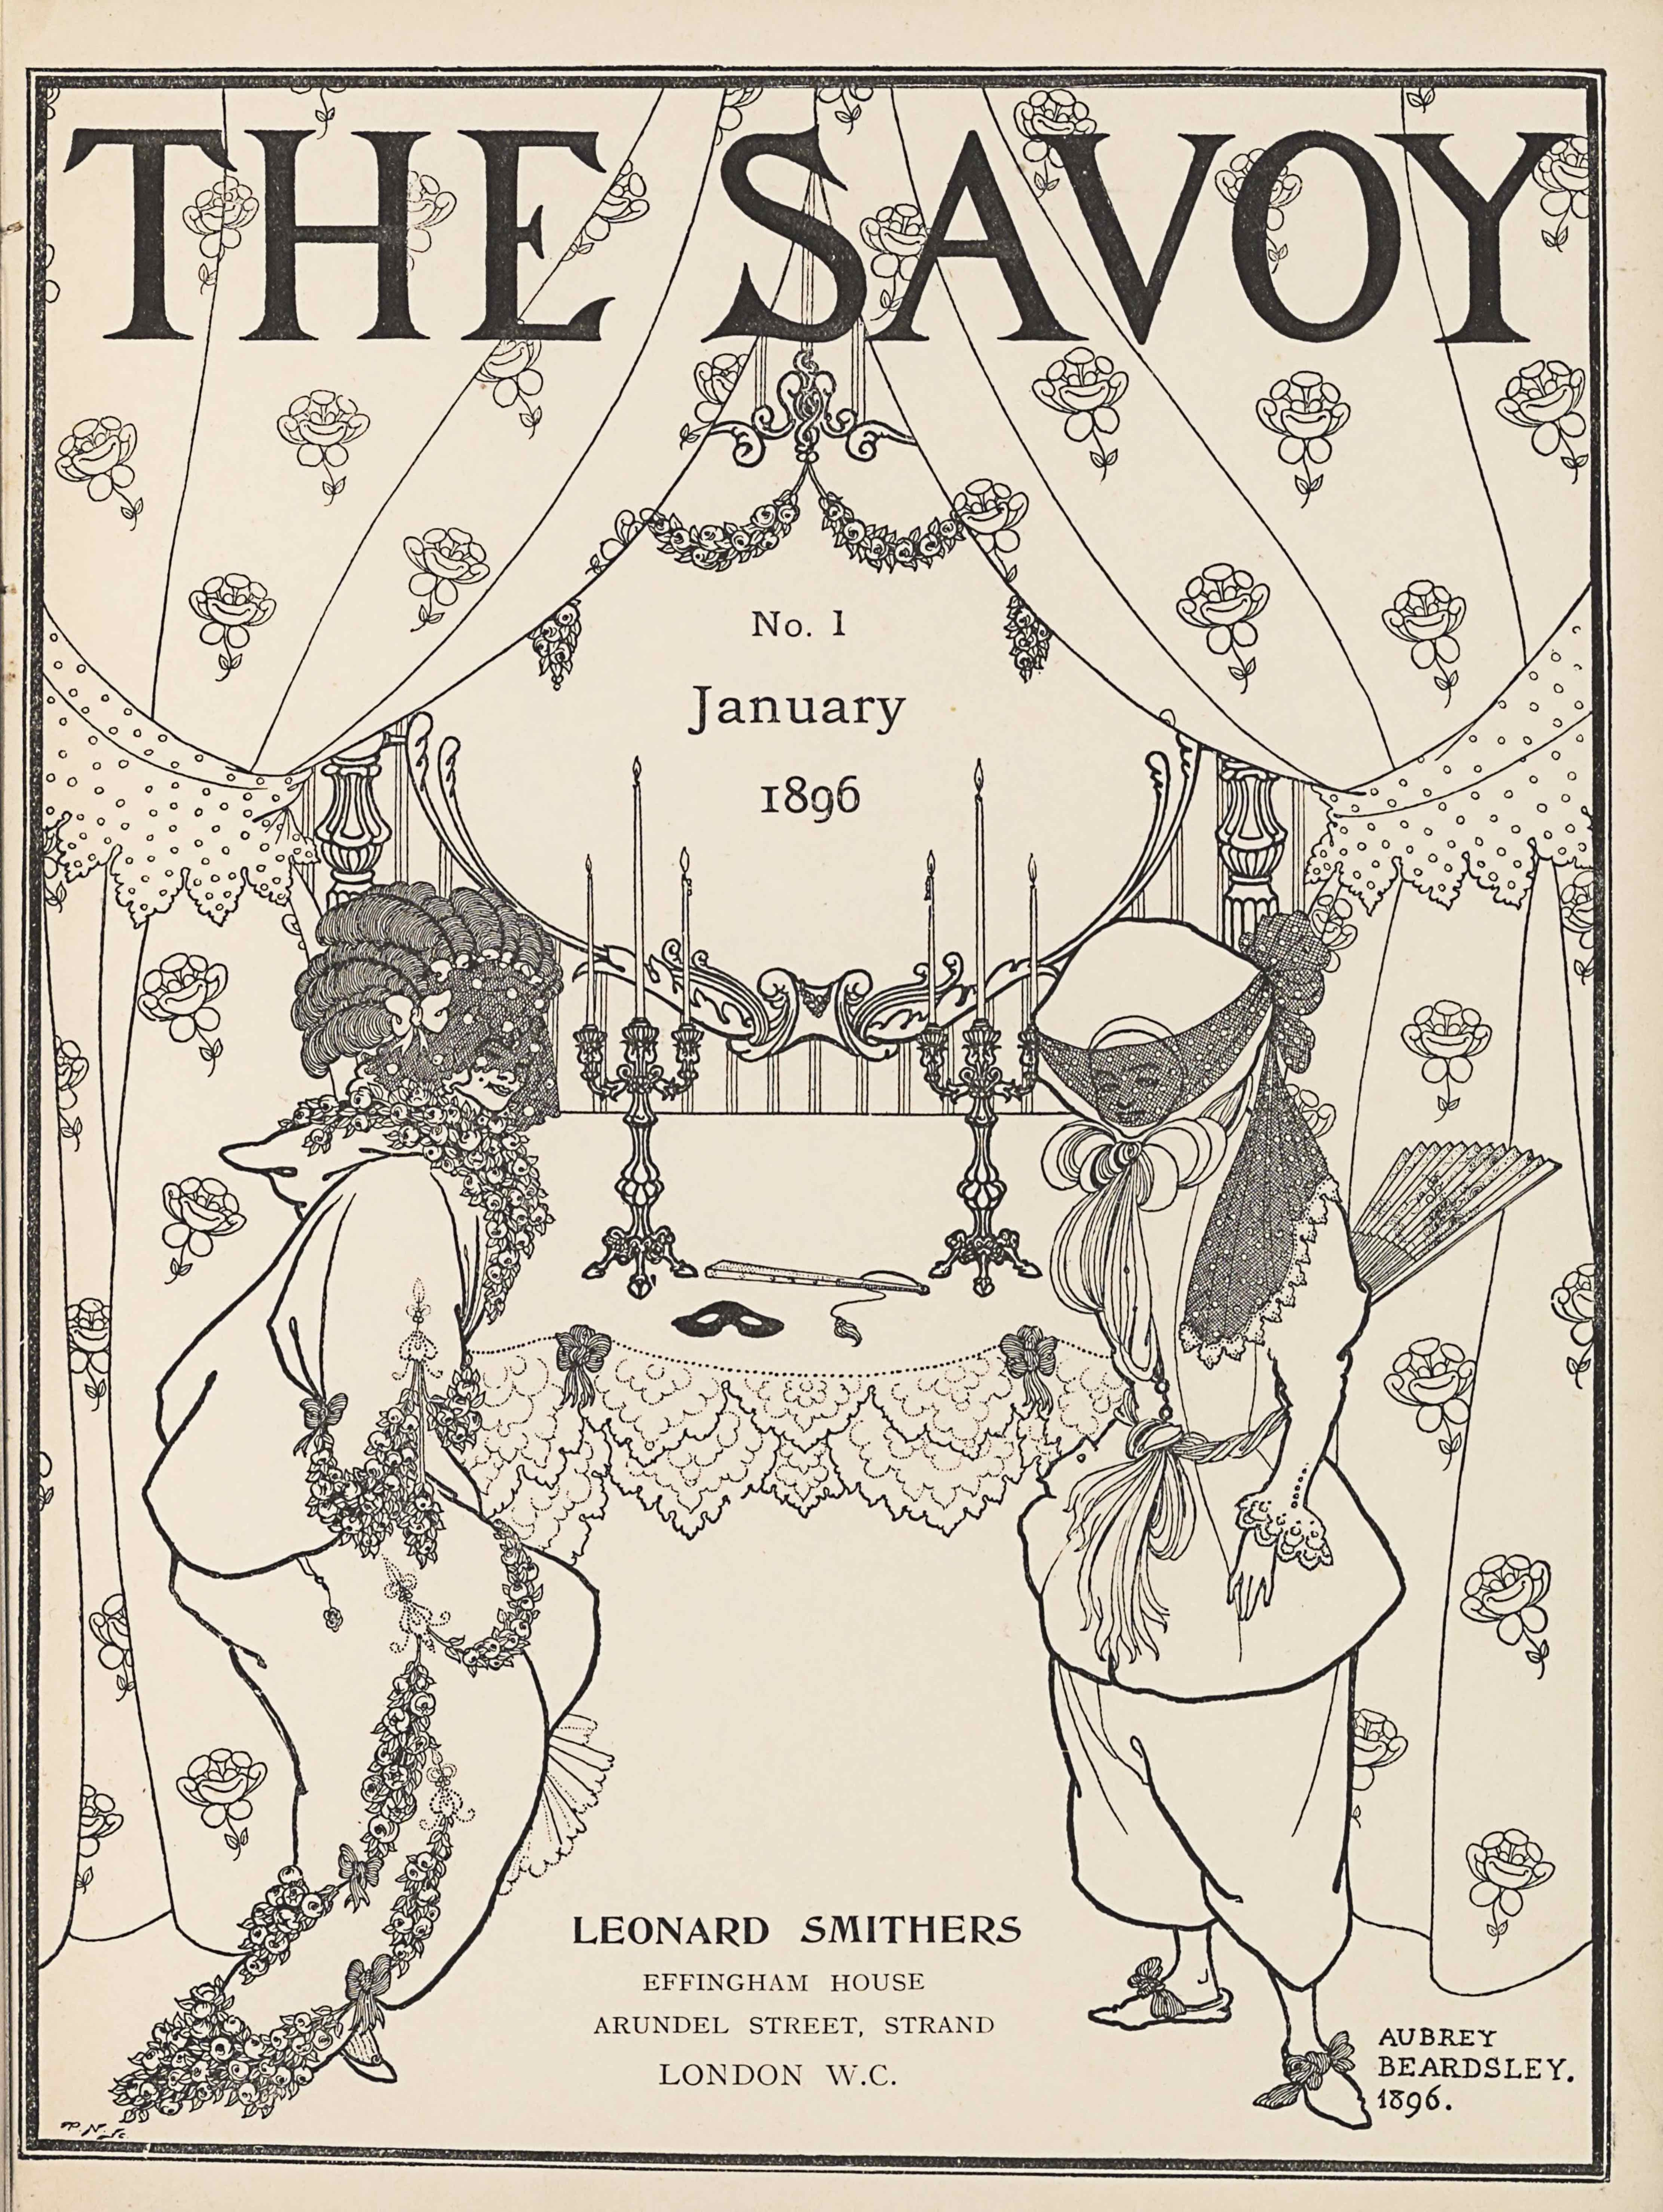 "The title-page image, in portrait orientation, combines a line-block reproduction of a pen-and-ink design with letterpress. The title, ""THE SAVOY"" [caps], appears in the top fifth of the page. At the top of the page behind the title, curtains adorned with rose flowers are split open, spanning the width of the page to descend the margins on each side. The curtains are tied off to the side with polka dotted fabric cut in decorative points jutting down at about the top third of the page. The curtains extend to nearly the base of the page, taking up a quarter of the page in width on each side. Behind the split curtains, and covered slightly by them, is an ornamented mirror that starts at the base of the title and extends down until the halfway point on the page, taking up the middle third of the page in width. The text ""No. 1"" appears within the mirror below two draped garlands of flowers. Also within the mirror is the text ""January"" and then, one line below, the text: ""No. 1,"" and one line down again from that is the text ""1896."" Below and in front of the mirror, in the mid-ground, is a table that holds two symmetrically placed three-tiered candlestick holders with lit candles extending up to the halfway point on the mirror. On the table between the candlestick holders is a black mask and a closed up, tasseled fan. The table is covered with a plain cloth that has two layers of doilies at the edge falling in front of the table. Two bows sit on the edge of the table cloth in front of each of the two candlestick holders. Standing in the foreground, to the left and right of the table, are two women. They take up just over half the page in height and about a quarter of the width each. The woman on the left is leaning forward, facing to the right, and shows a two-thirds profile of her face. She is dressed in a plain, baggy, hooded long-sleeve top and a long skirt. Bunches of flowers are tied around her neck and also at the hem of her shirt sleeve, and draped in two layers on her skirt. Her hair is tied up atop her head in coiled rows, with about four bows lined in a crown and a veil covering her face. The woman on the right is facing to the left and showing a three-quarters profile. She is dressed in a buttoned tunic coat with puffy upper sleeves that tighten at the forearm and have a ruffled sleeve. The coat is made tight at the waist with a twisted fabric belt and the same material appears tied around her neck with a large bow at her chin. She wears baggy pants that reach just below the knee and show off bowed slippers on her feet. Atop her head is a large bonnet that covers all of her hair and ears. A veil covers her face and is tied at the back of her hat, with the excess material from the tie draping down across her left shoulder. A large fan emerges from her back, slightly spread and decorated with a floral pattern. Between the two women is mostly blank space until the centre foreground at the very bottom of the page where there is publishing information. Here appears the text: ""LEONARD SMITHERS"" [caps] and in the line below in slightly less bold font ""EFFINGHAM HOUSE"" [caps], and in the line below that: ""ARUNDEL STREET, STRAND"" [caps], and in the last line below: ""LONDON W.C."" [caps].. In the bottom right corner there is text in three rows, the first is: ""AUBREY"" [caps], the second line down is: ""BEARDSLEY."" [caps], and the third line is: ""1896."" The page is bordered in a double-line, with the inner line four-times the thickness of the exterior."